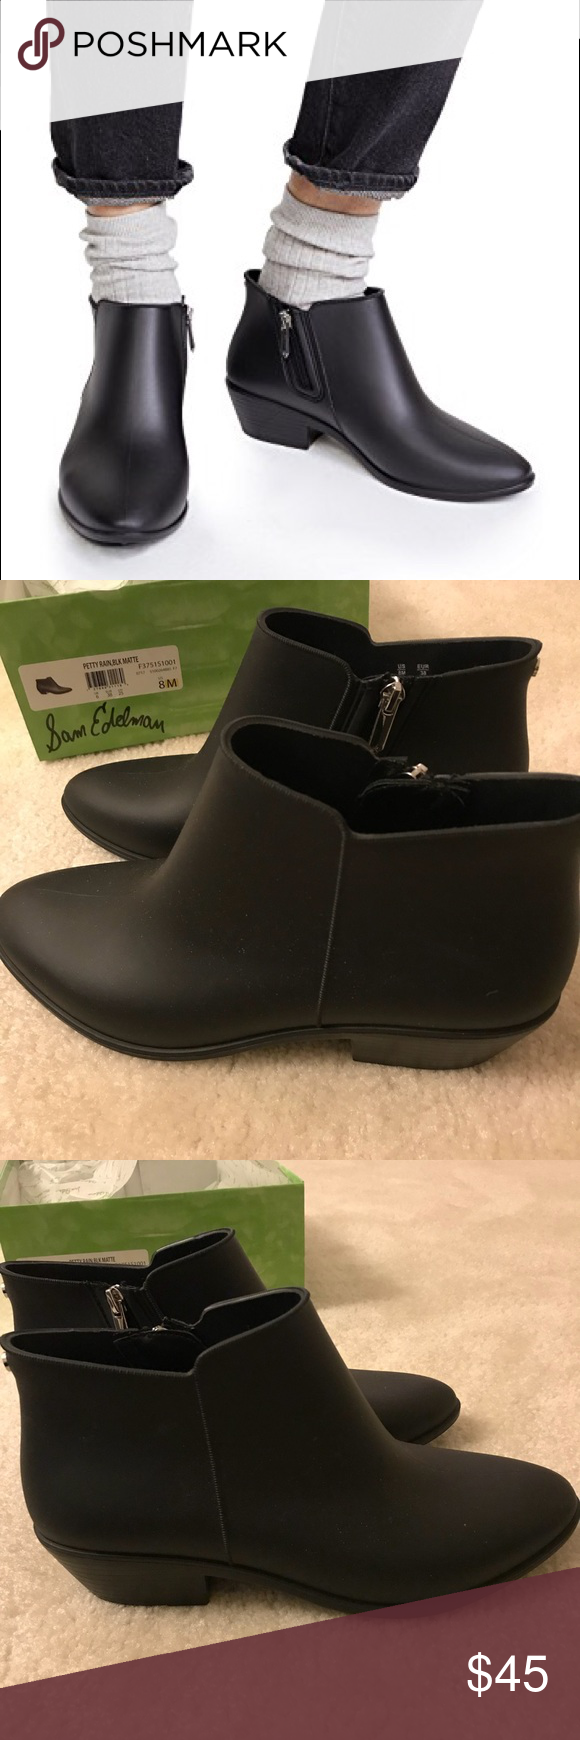 f74c411984d1 Sam Edelman Petty Rain Booties Beautiful rain booties! Perfect for the  puddles but comfortable even when it s not raining. Worn once but felt they  were a ...